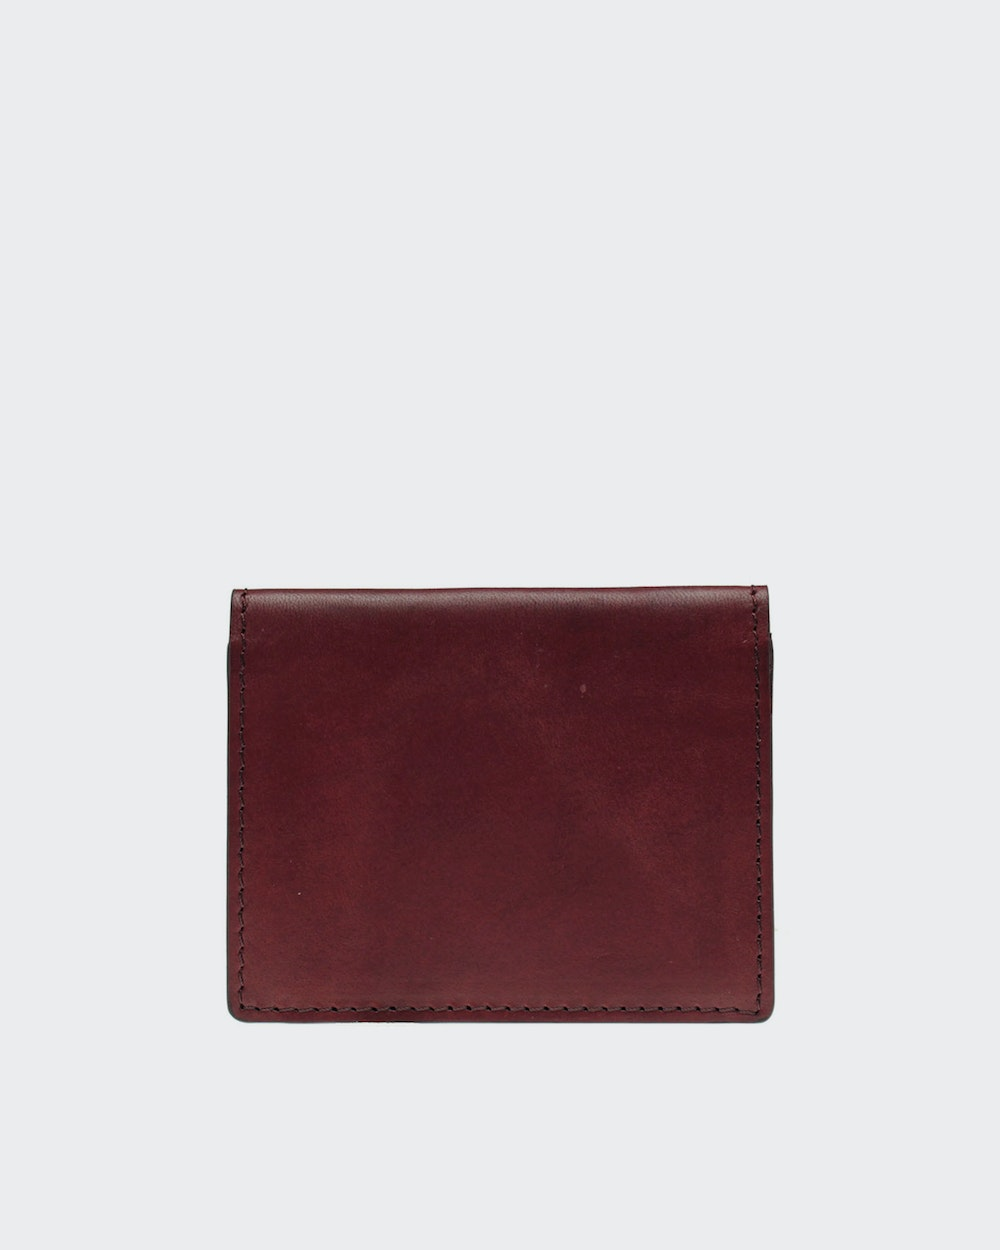 Ted wallet Red Oscar Jacobson